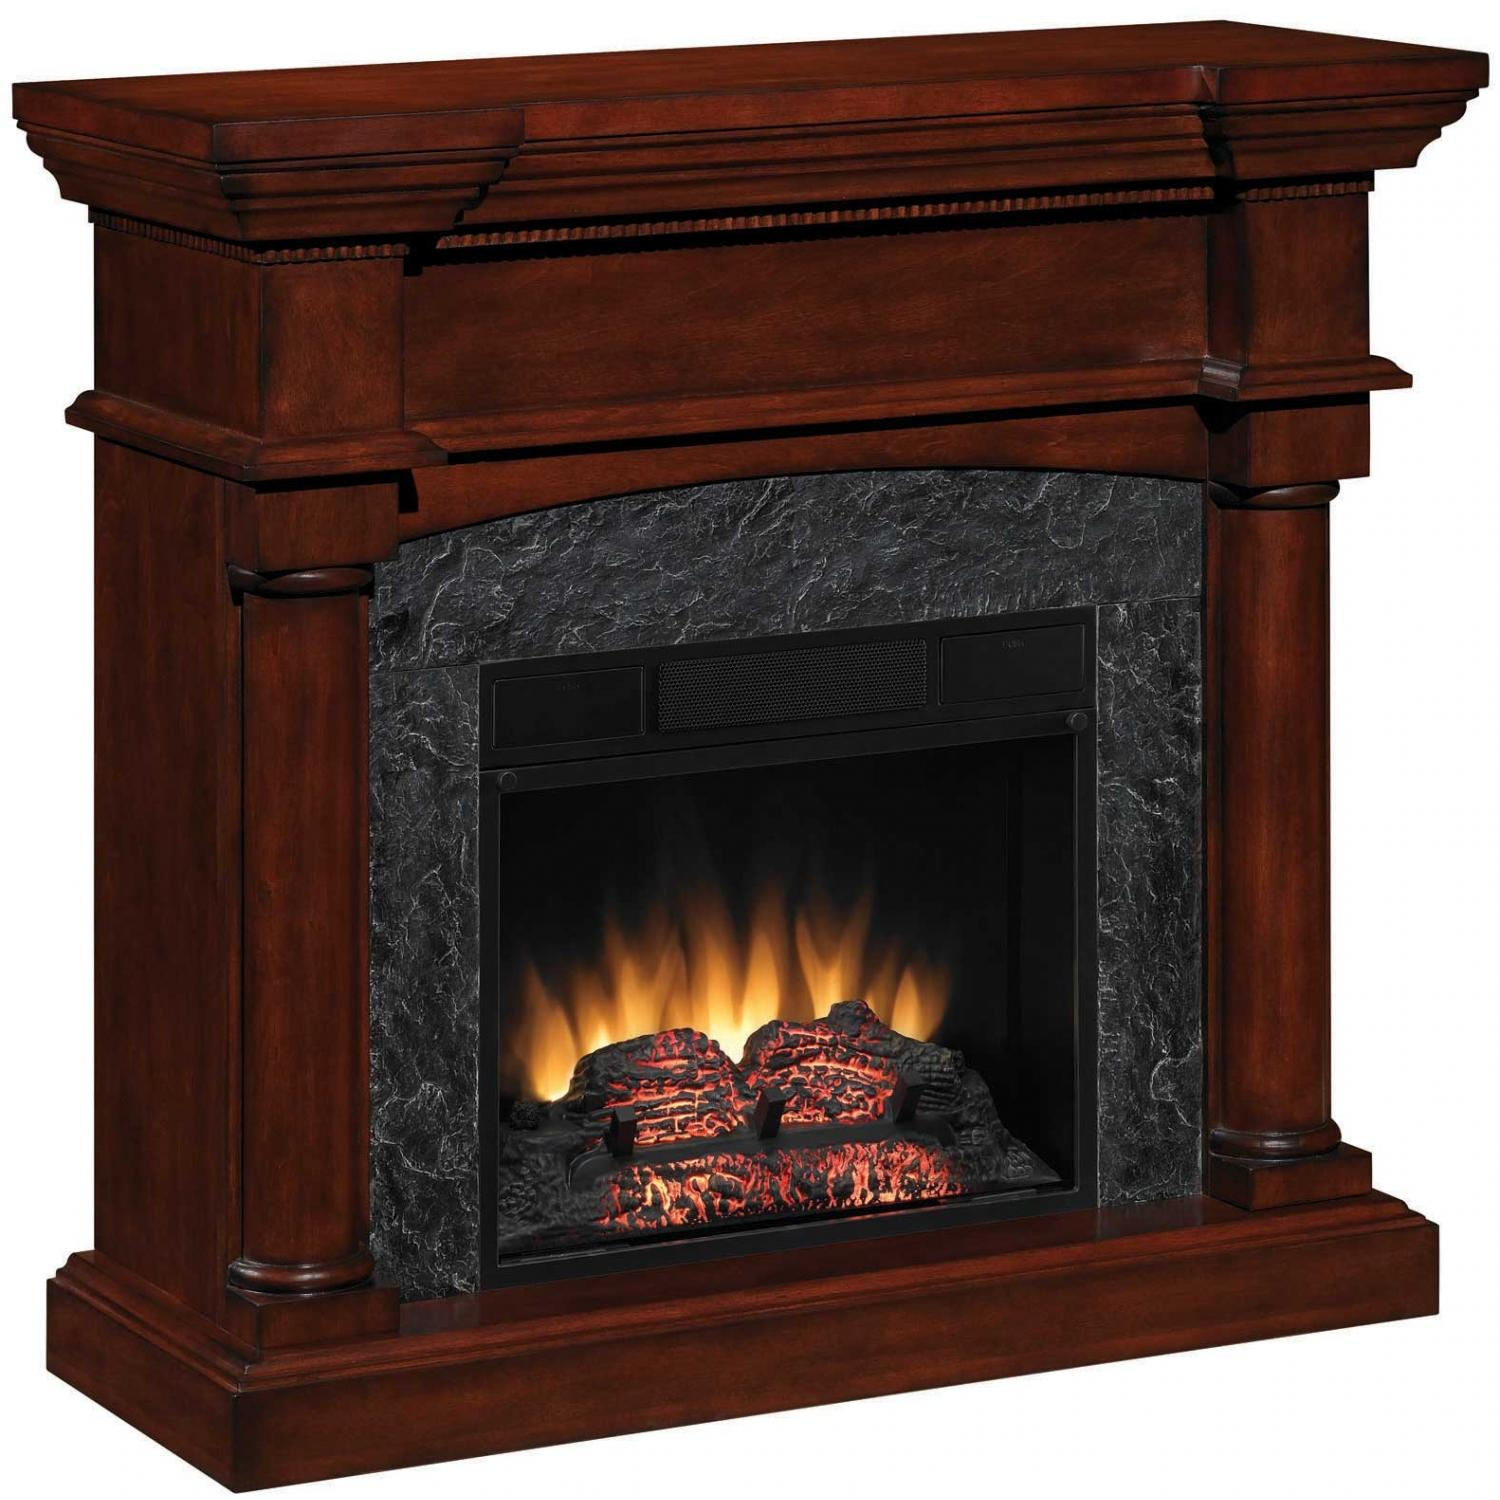 ClassicFlame 18DM2105-M319 Marthas Vineyard 18 Inch Dual Use Electric Fireplace - Antique Mahogany